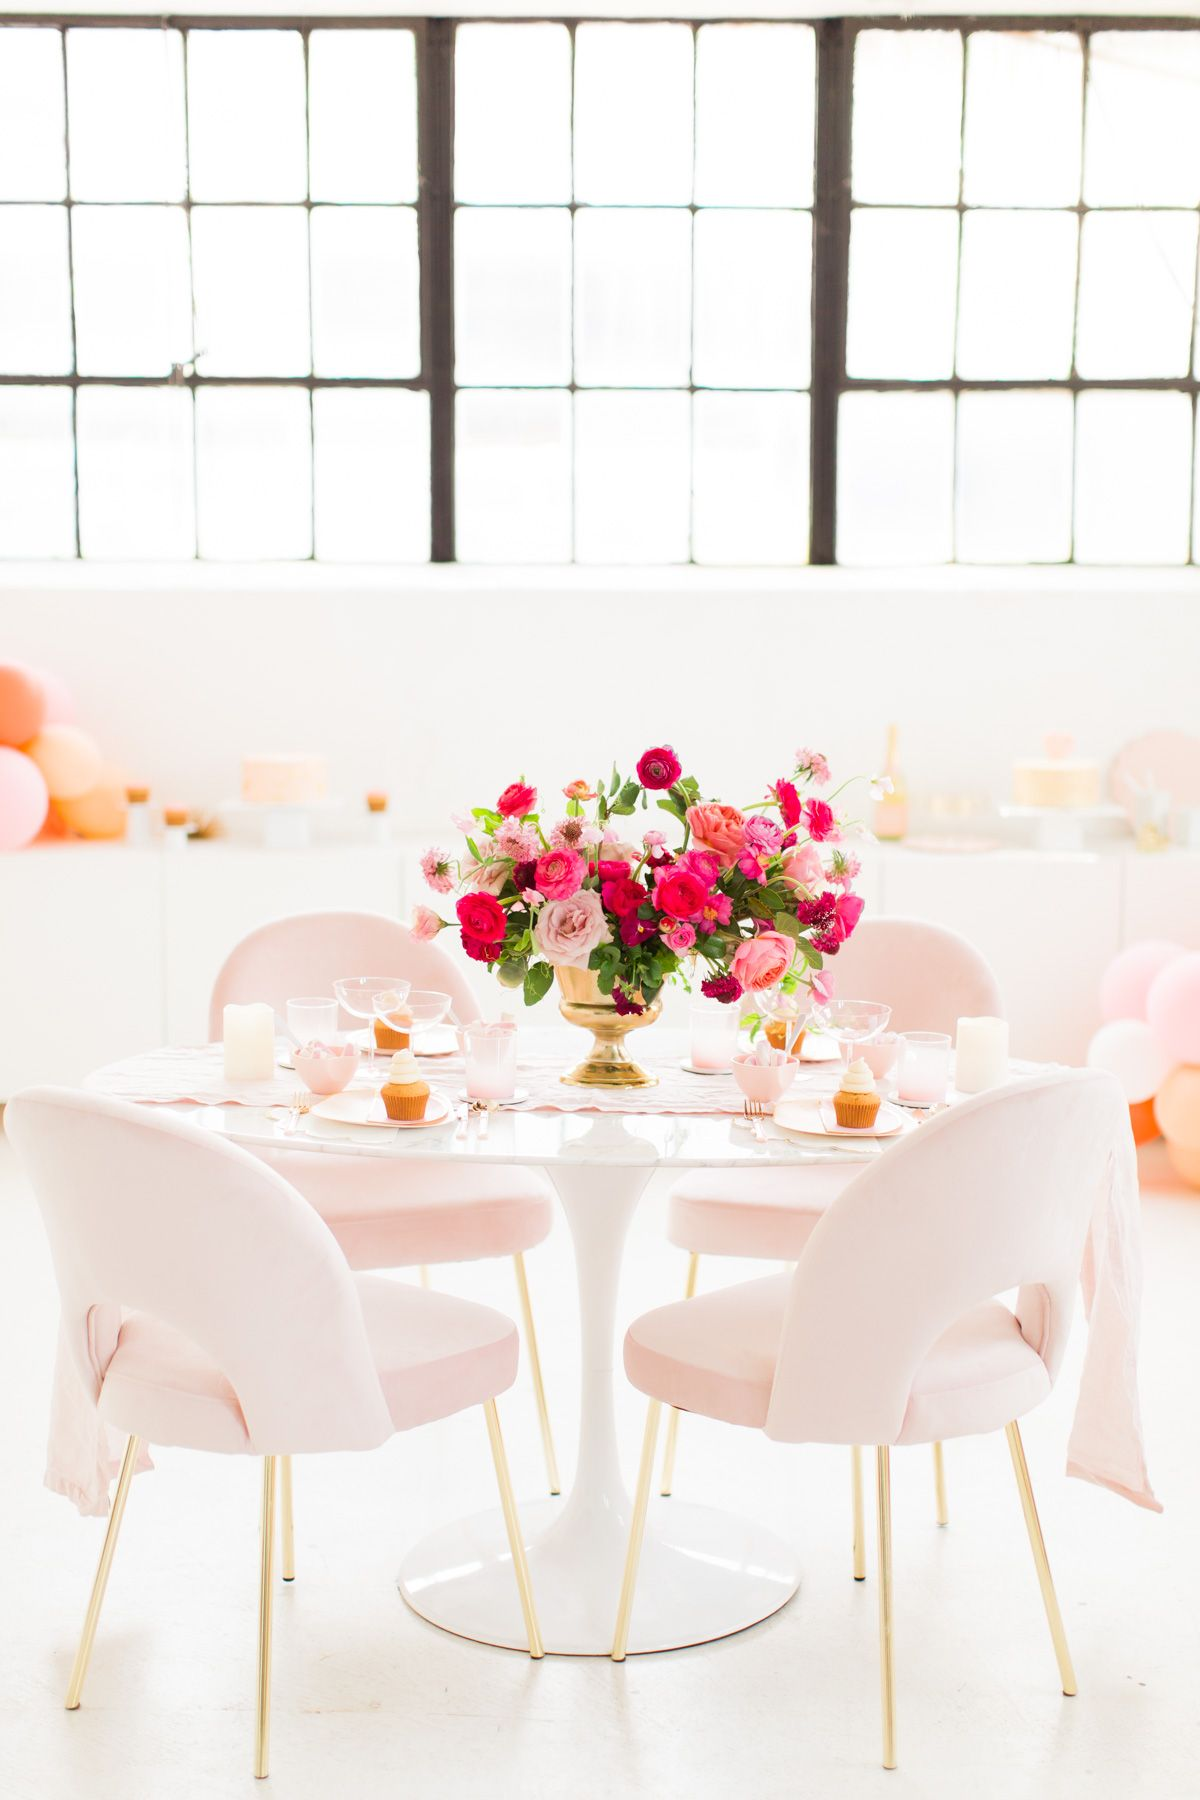 A Simple and Chic Galentine's Table